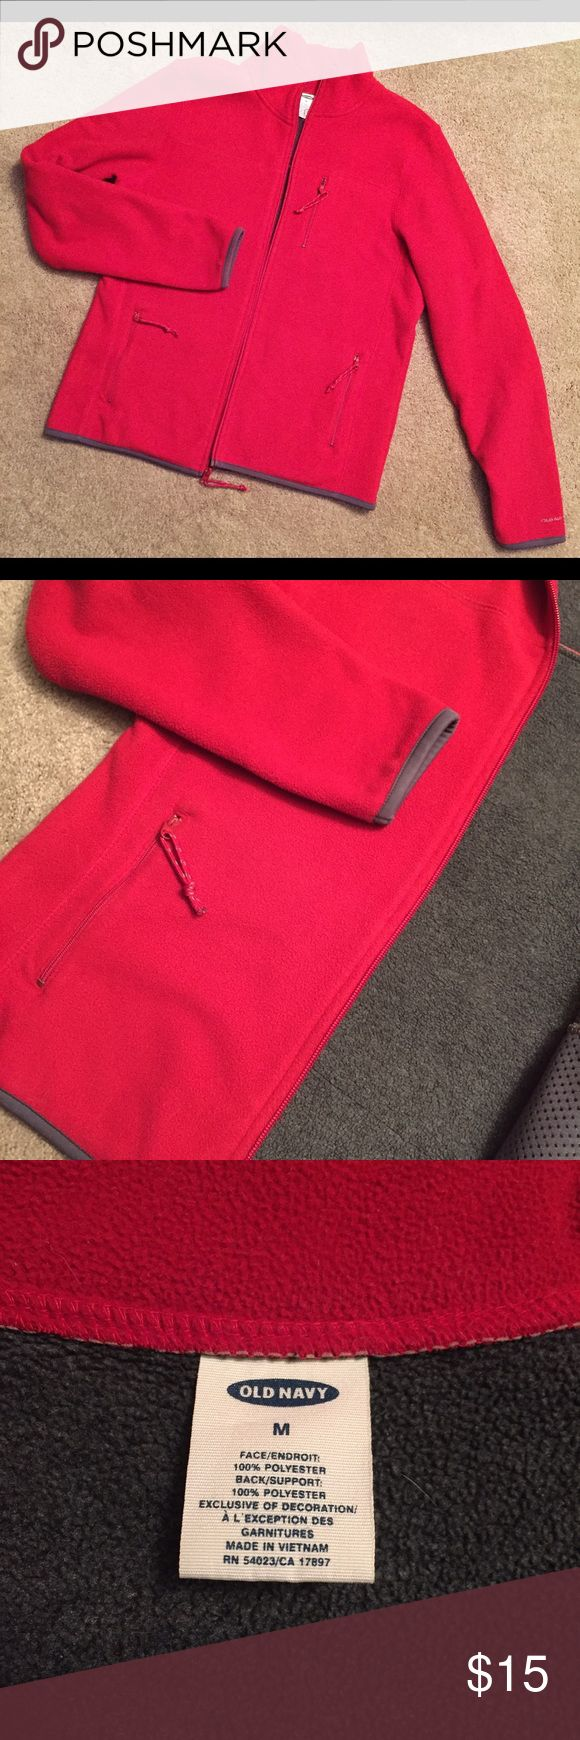 [Old Navy] Fleece Zip-Up Old Navy Fleece • Red Fleece with Gray Trim • Purchased in 2002 - much better quality than the fleece jackets Old Navy currently makes. • Thick and warm. • Well-cared for, just not my size anymore. Old Navy Tops Sweatshirts & Hoodies